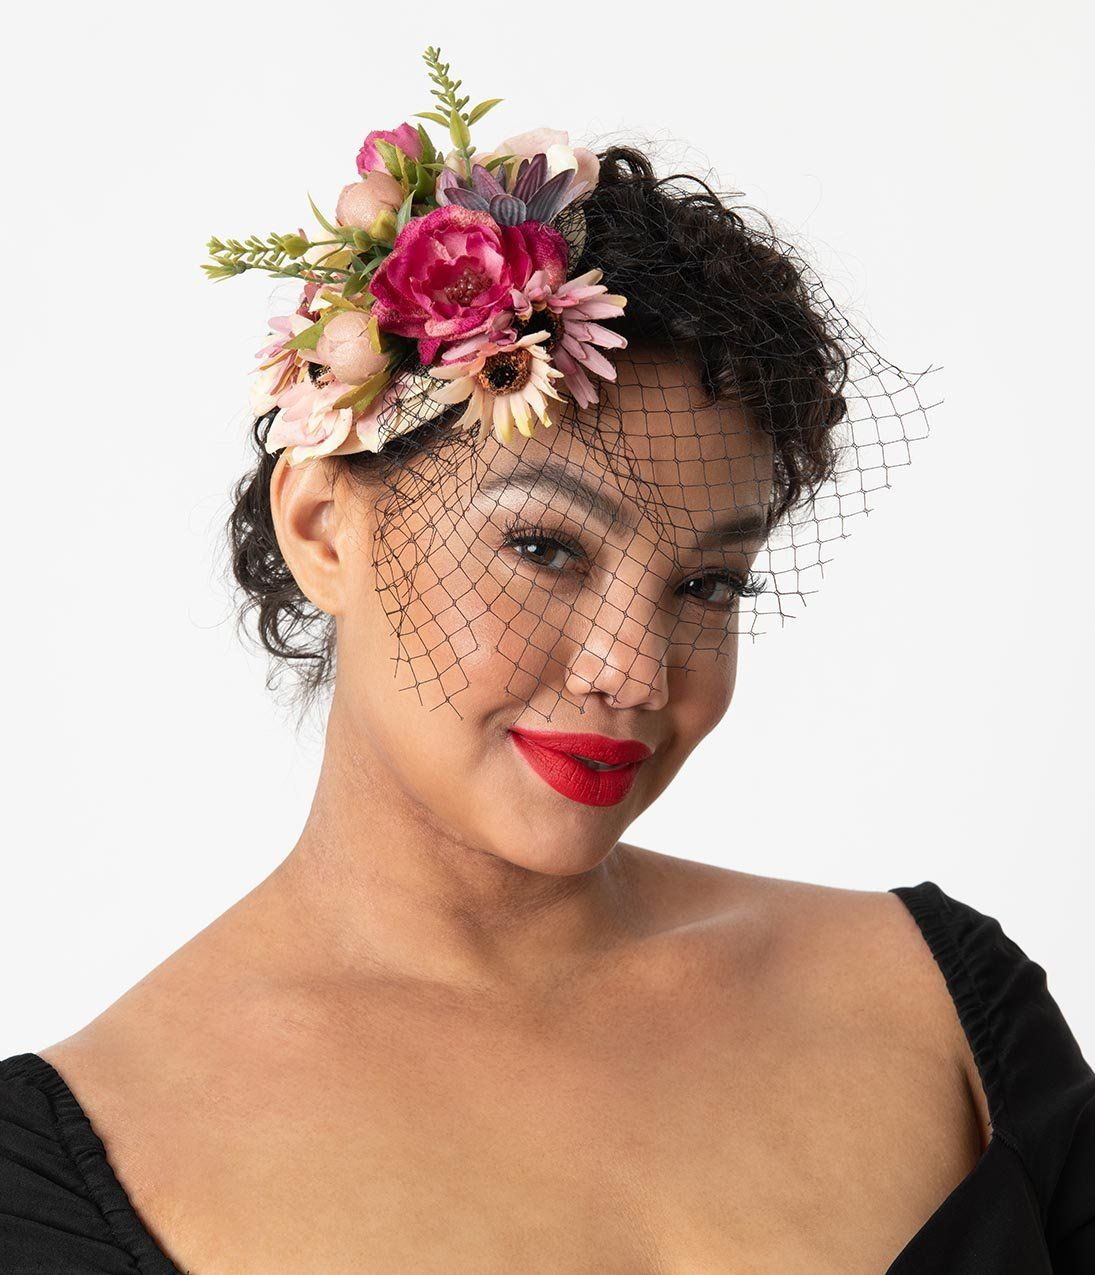 93847f1ca8841 1950s Women s Hat Styles   History Multicolor Floral Birdcage Veil Sinamay  Fascinator  32.00 AT vintagedancer.com